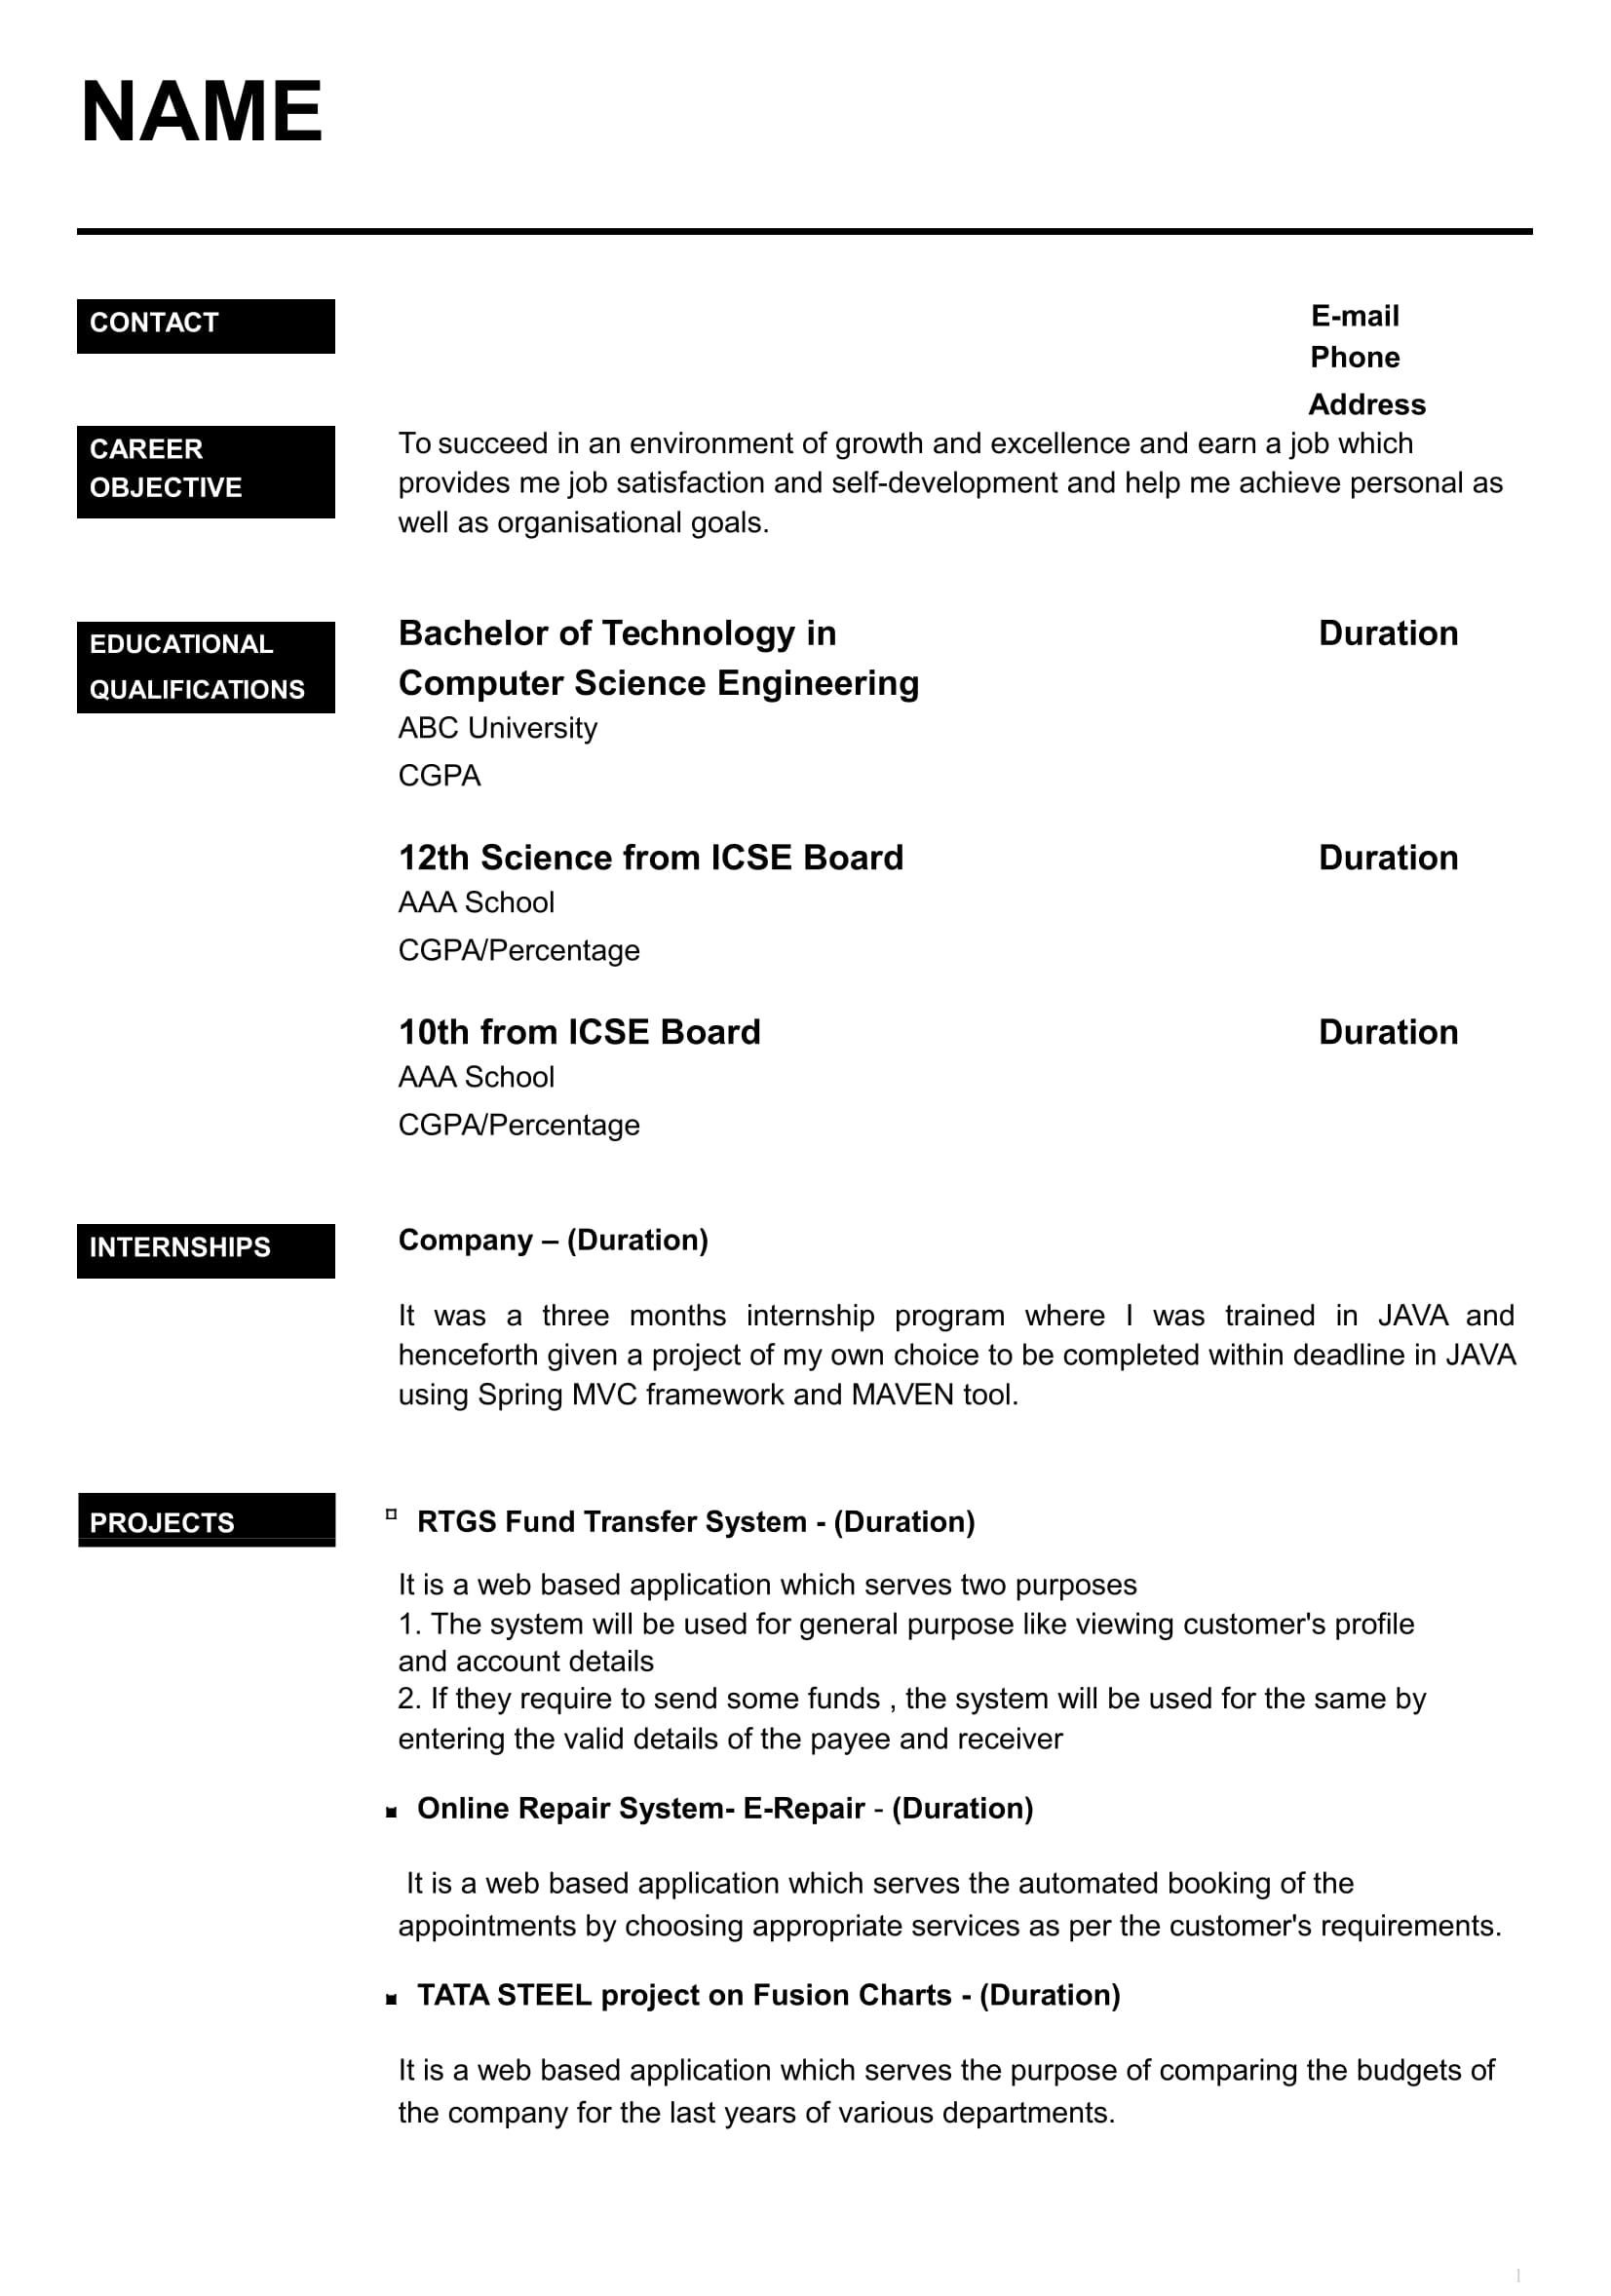 resume templates for freshers free word format awesome best job template writing samples Resume Resume Writing Samples For Freshers